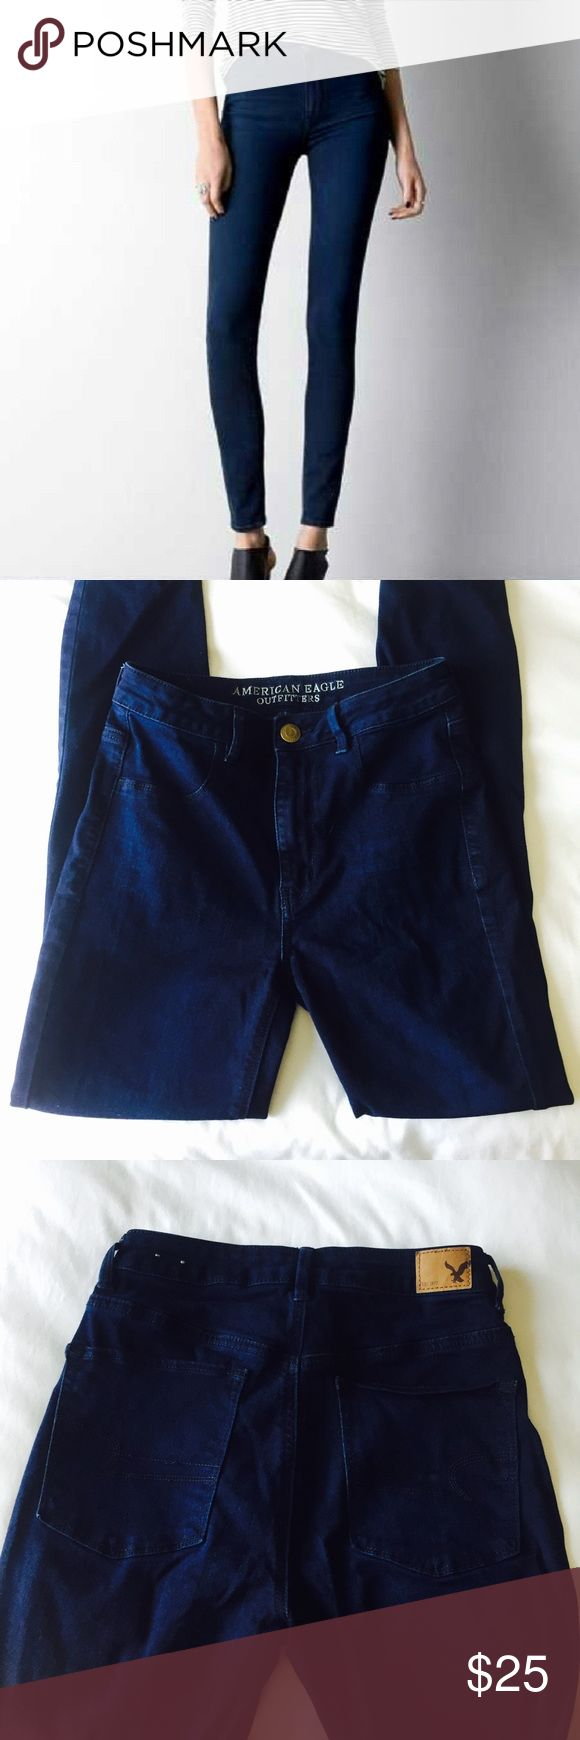 "American Eagle Sky High Jegging (Dark Wash) These dark wash denim jeans are skinny and super high waisted! They are also a little stretchy. Regular length, for reference I'm 5'4"" and I need to roll them up. Ordered online and decided high waisted jeans don't look great on me haha, so these have never been worn other than to try on.(NWOT). Questions and offers welcome! American Eagle Outfitters Jeans Skinny"